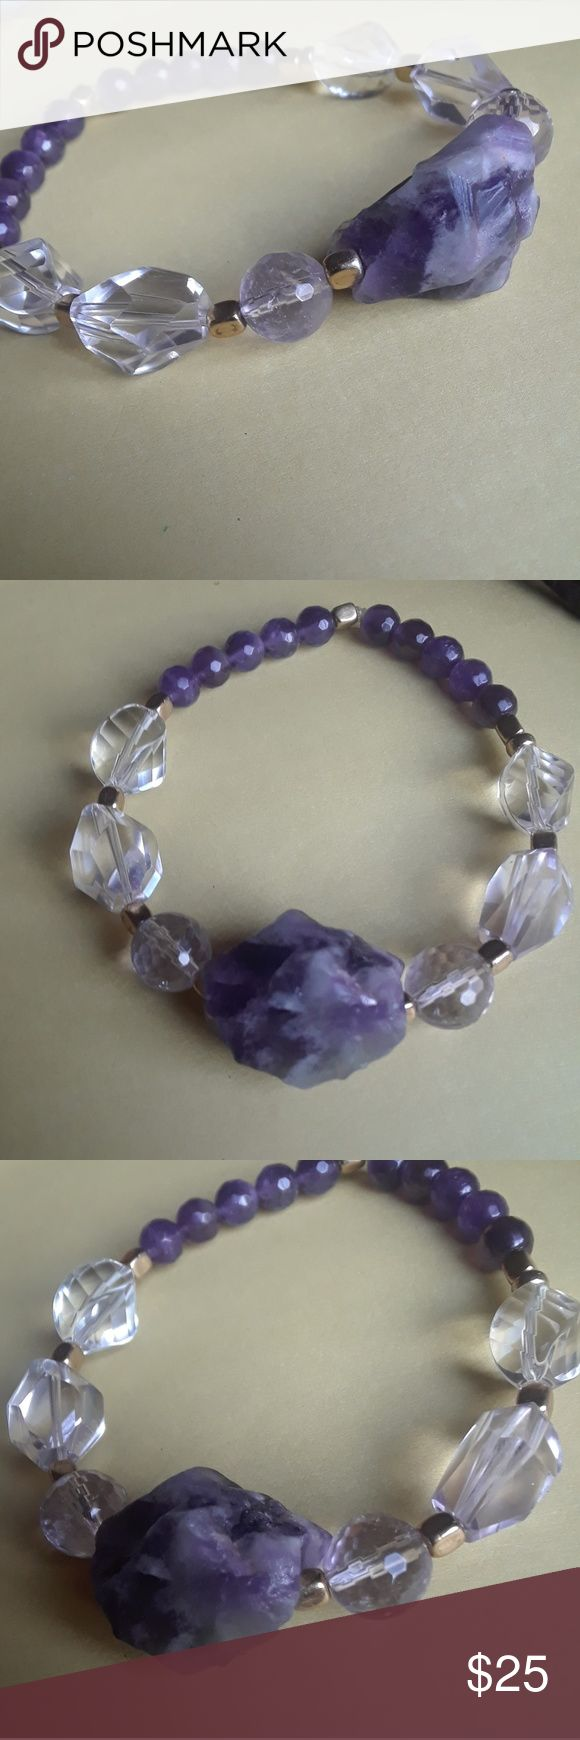 Third eye energy bracelet Amethyst Healing Properties  ♥ Increases nobility ♥ Spiritual awareness ♥ Psychic abilities ♥ Inner peace and healing ♥ Healing of body, mind & soul ♥ Positive transformation ♥ Meditation ♥ Balance ♥ Relieves stress ♥ Communication  Clear Quartz Healing Properties ♥ Harmony ♥ Energy ♥ Healing ♥ Psychic abilities ♥ Clarity ♥ Calmness Jewelry Bracelets